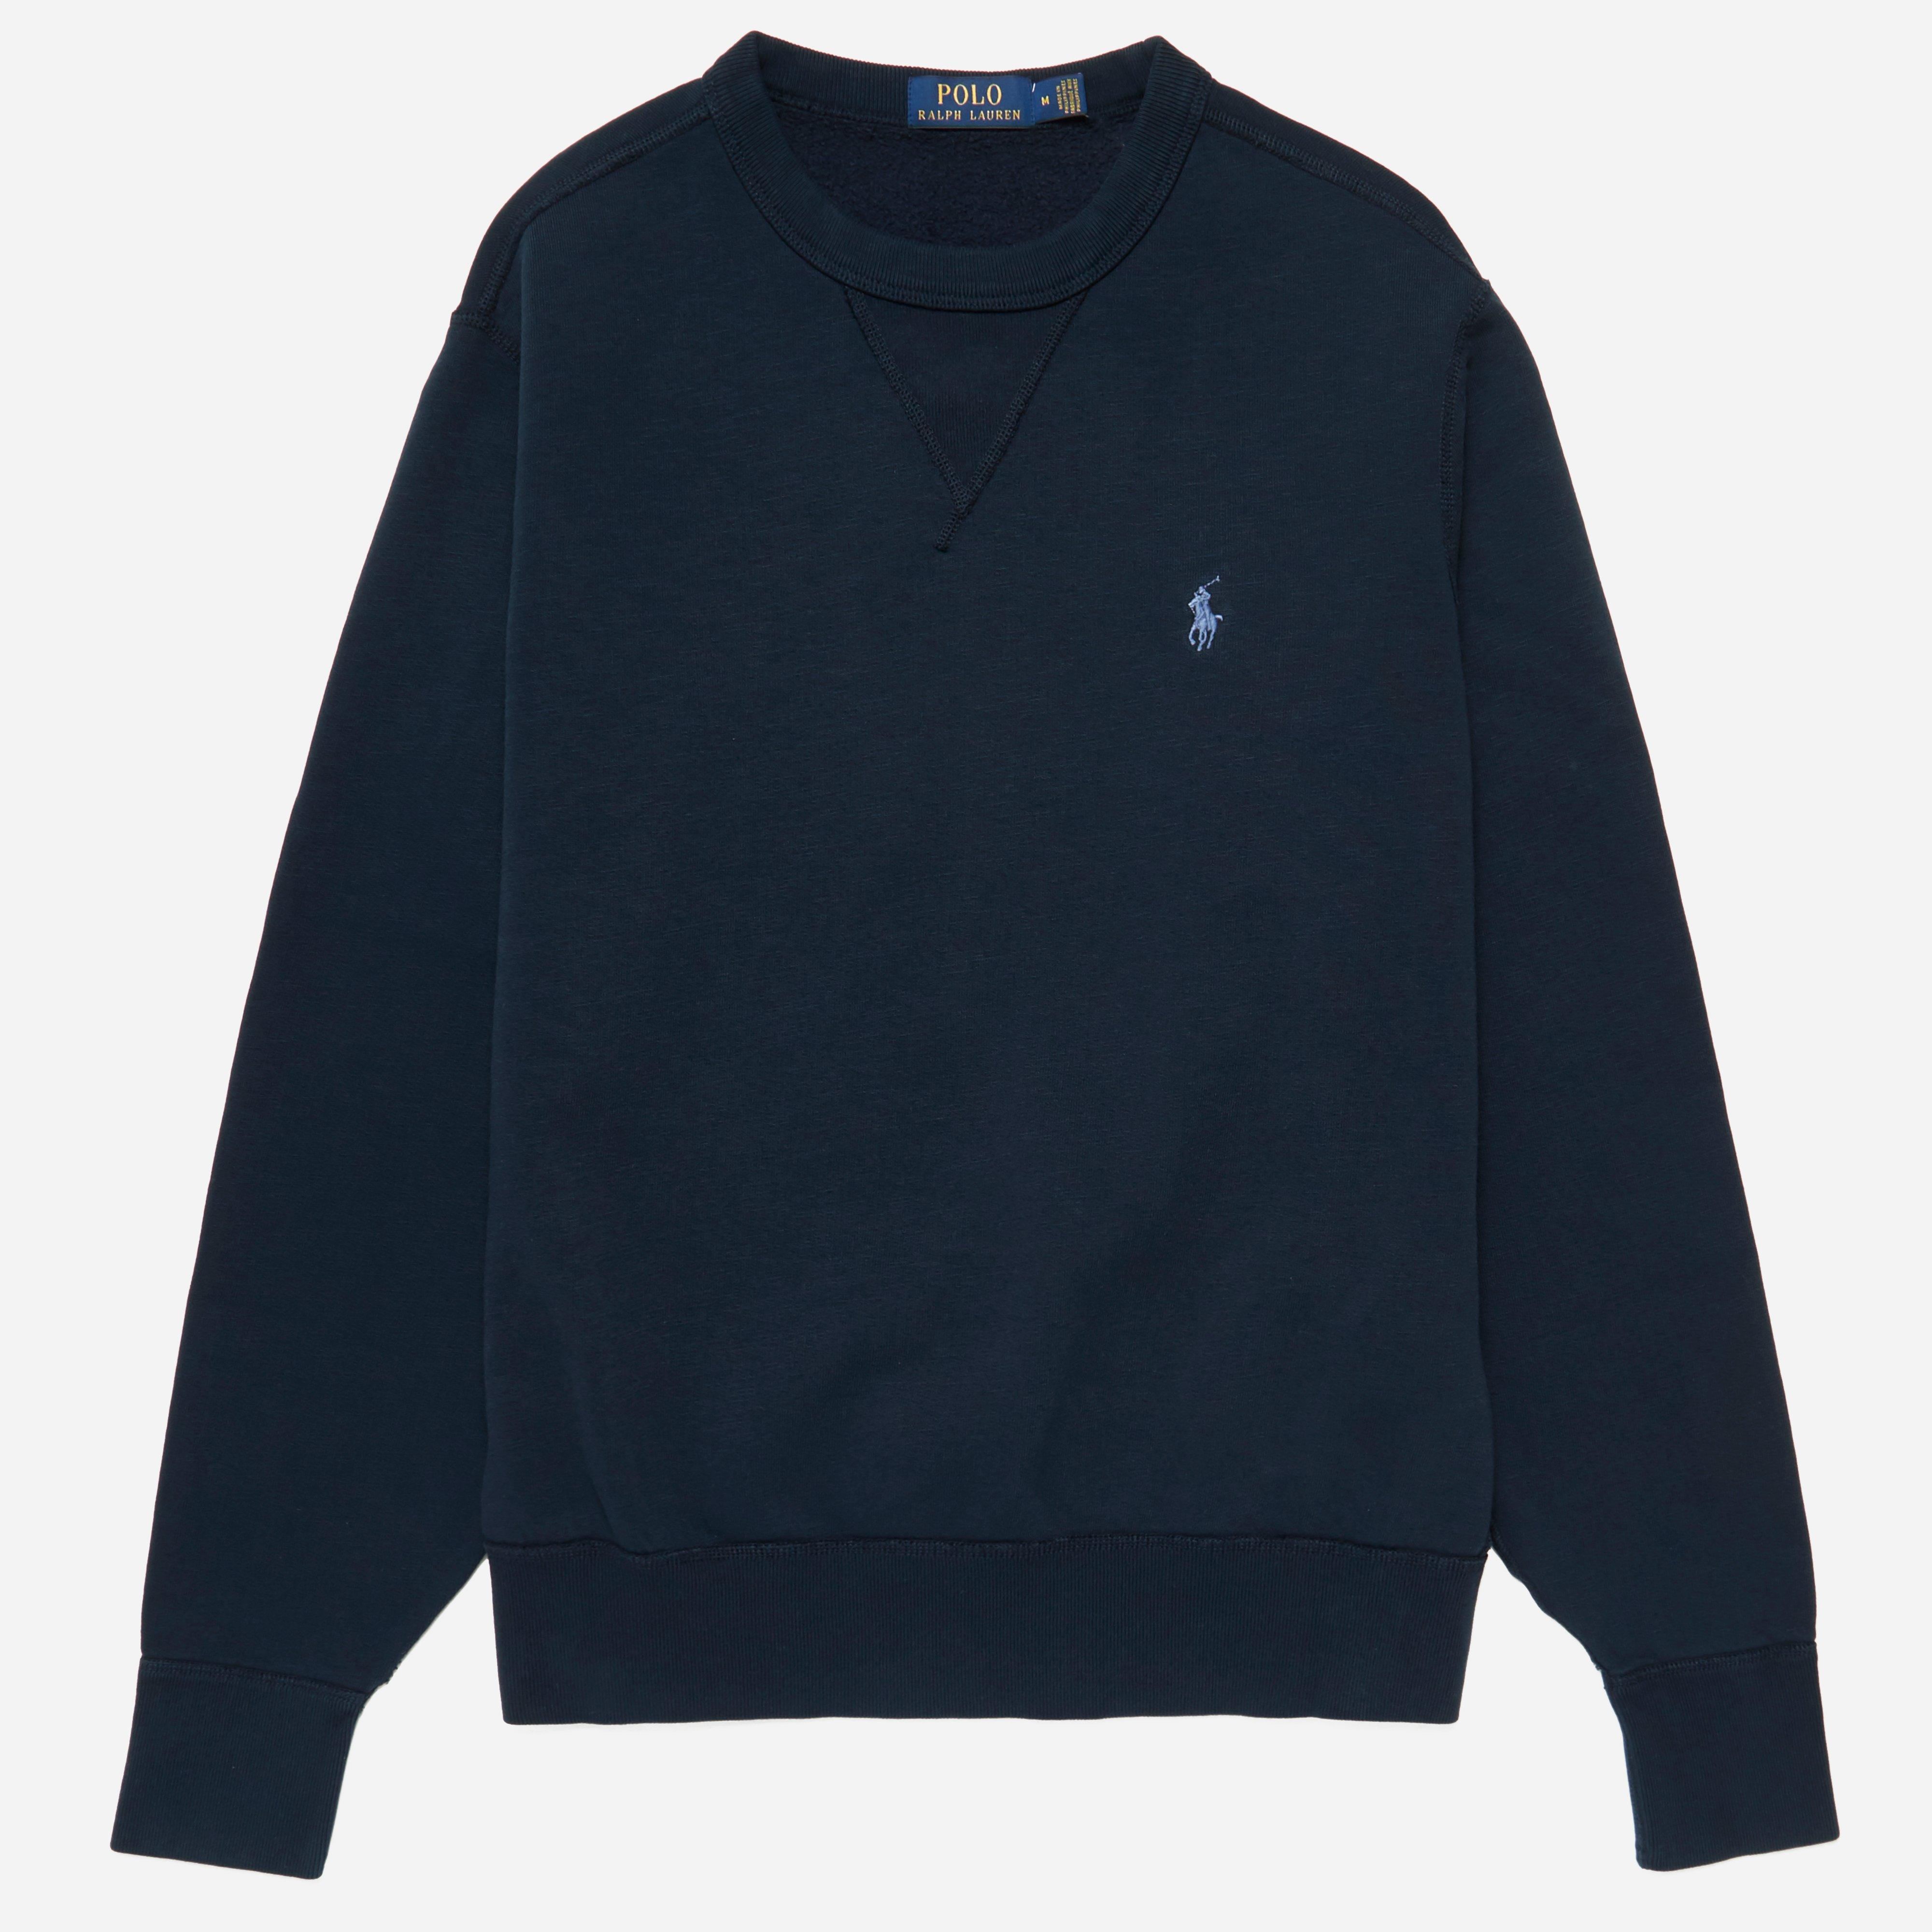 Polo Ralph Lauren Knit Fleece Sweatshirt